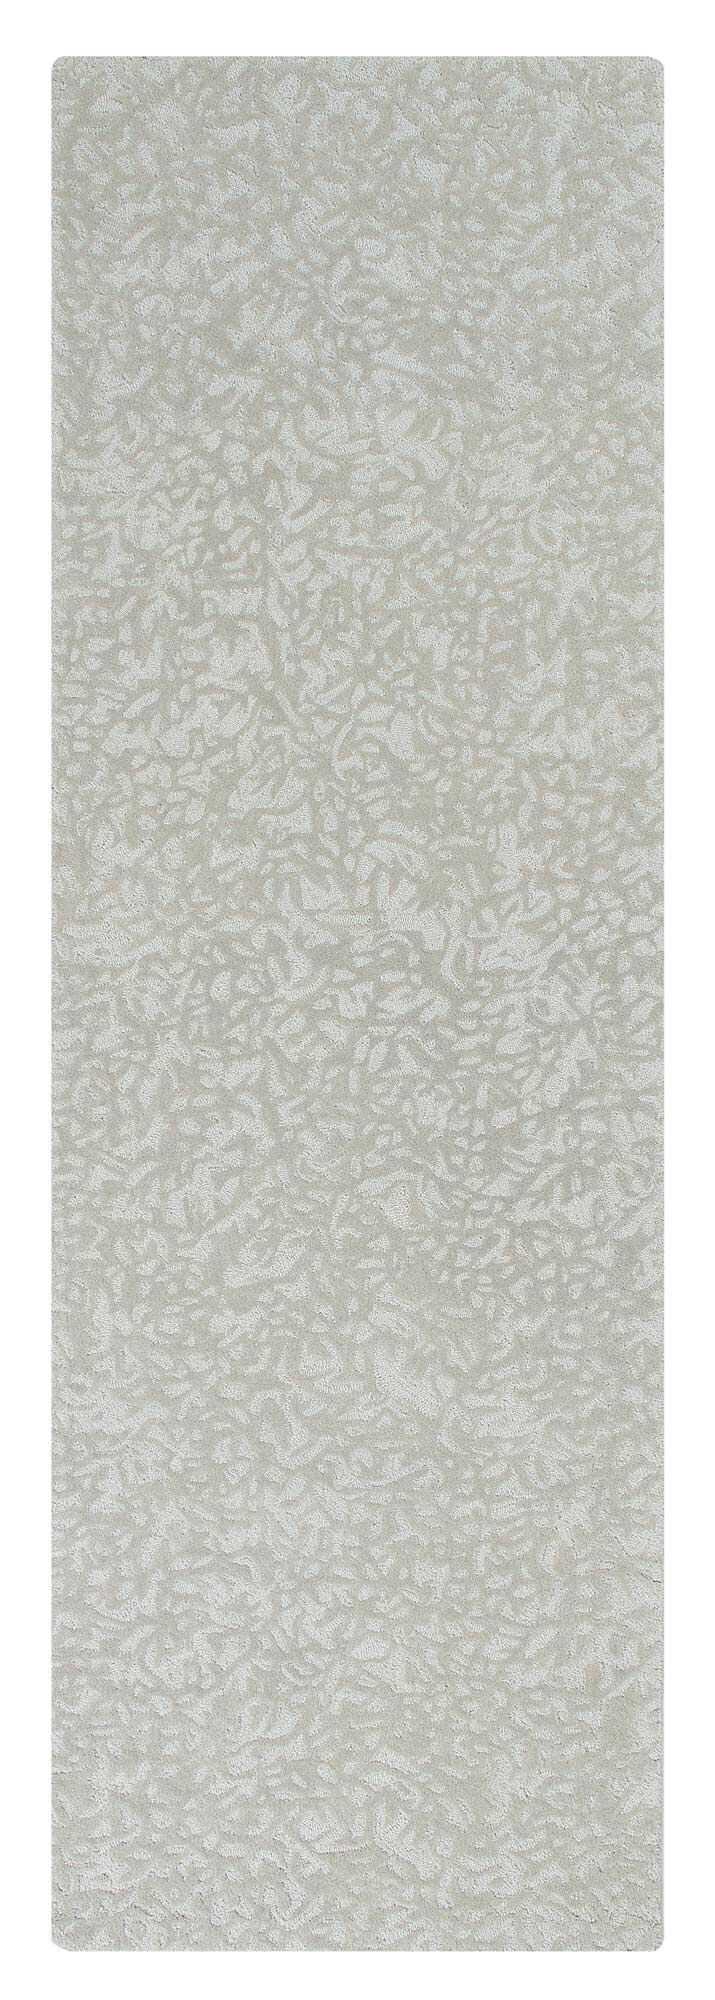 Crackle Hand-Tufted Pewter Area Rug Rug Size: Rectangle 5' x 8'